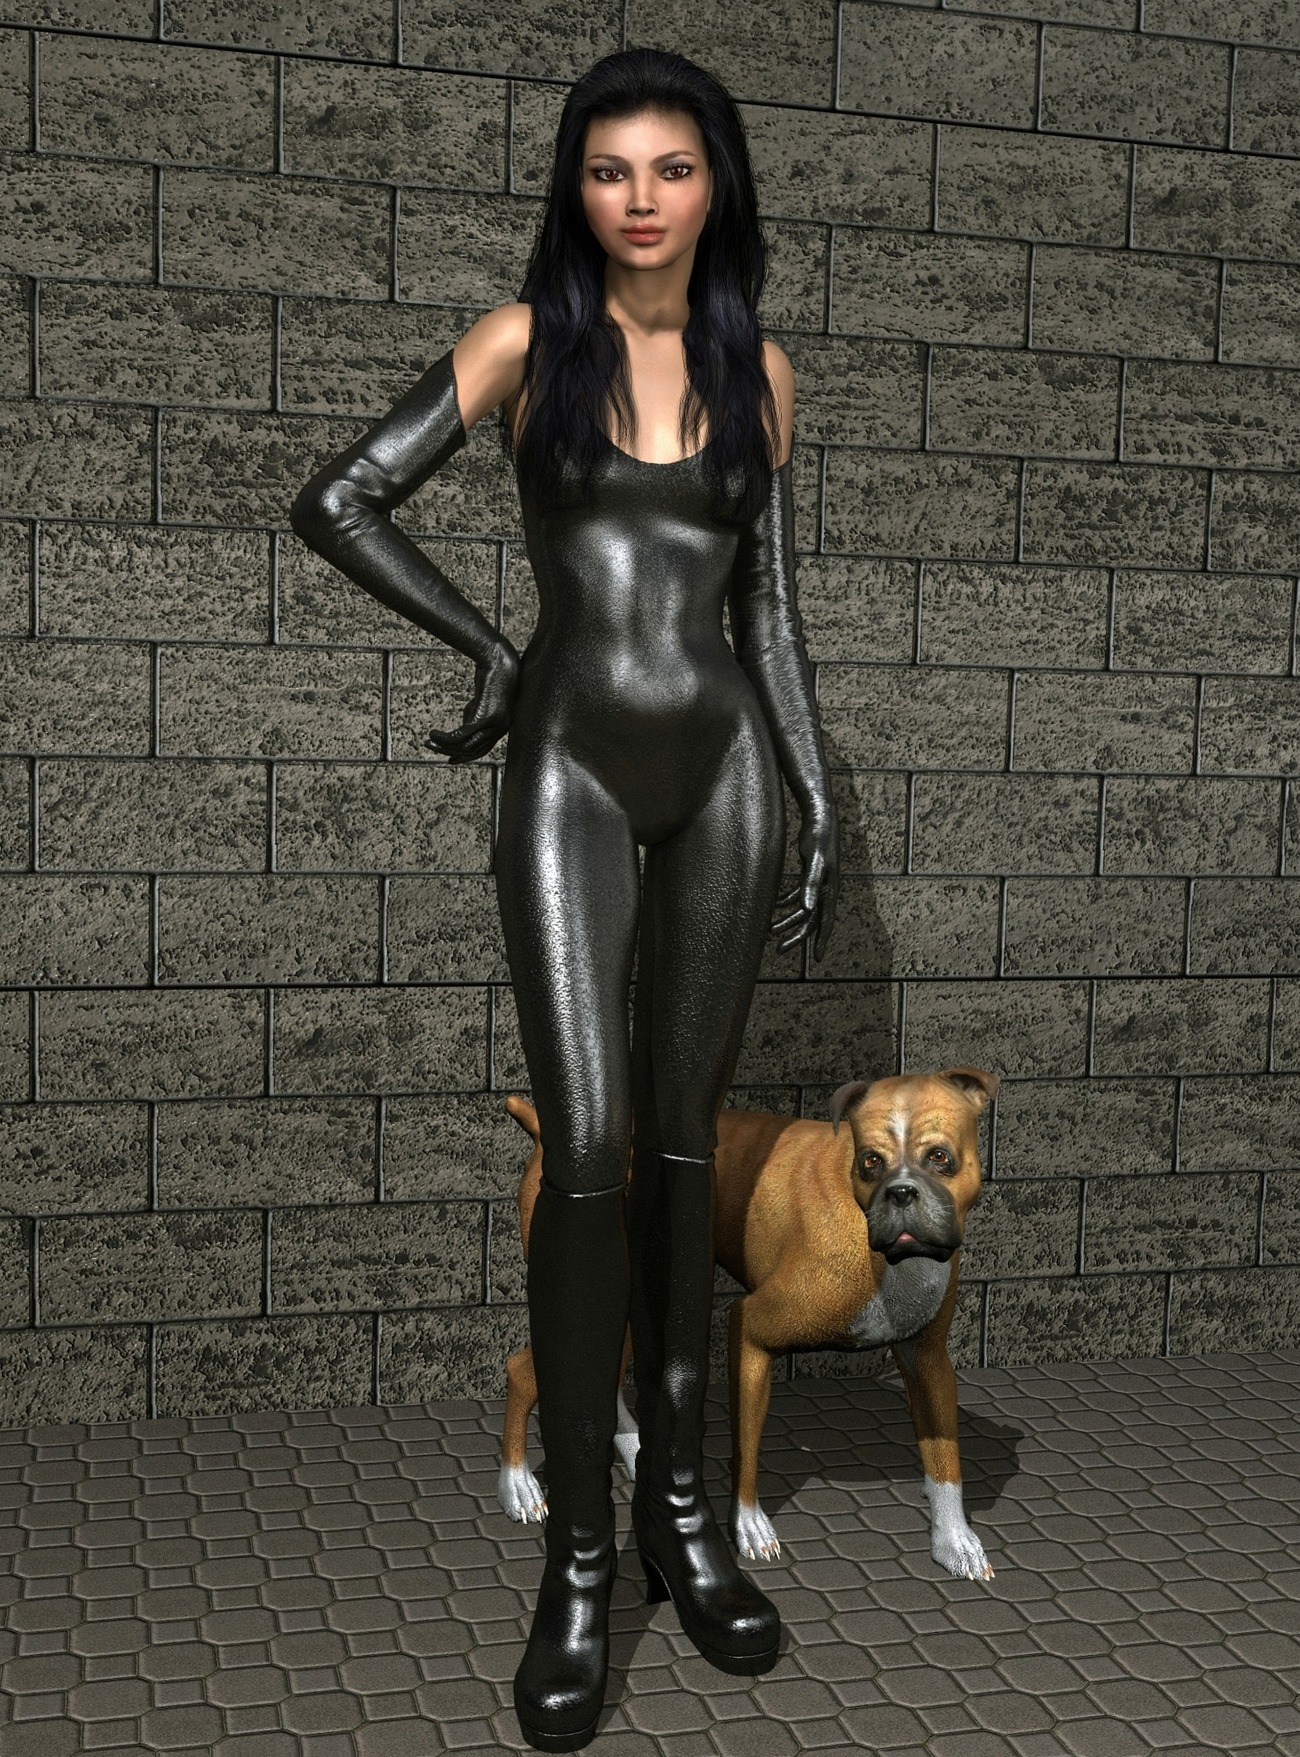 Lady and Dog by Simone83